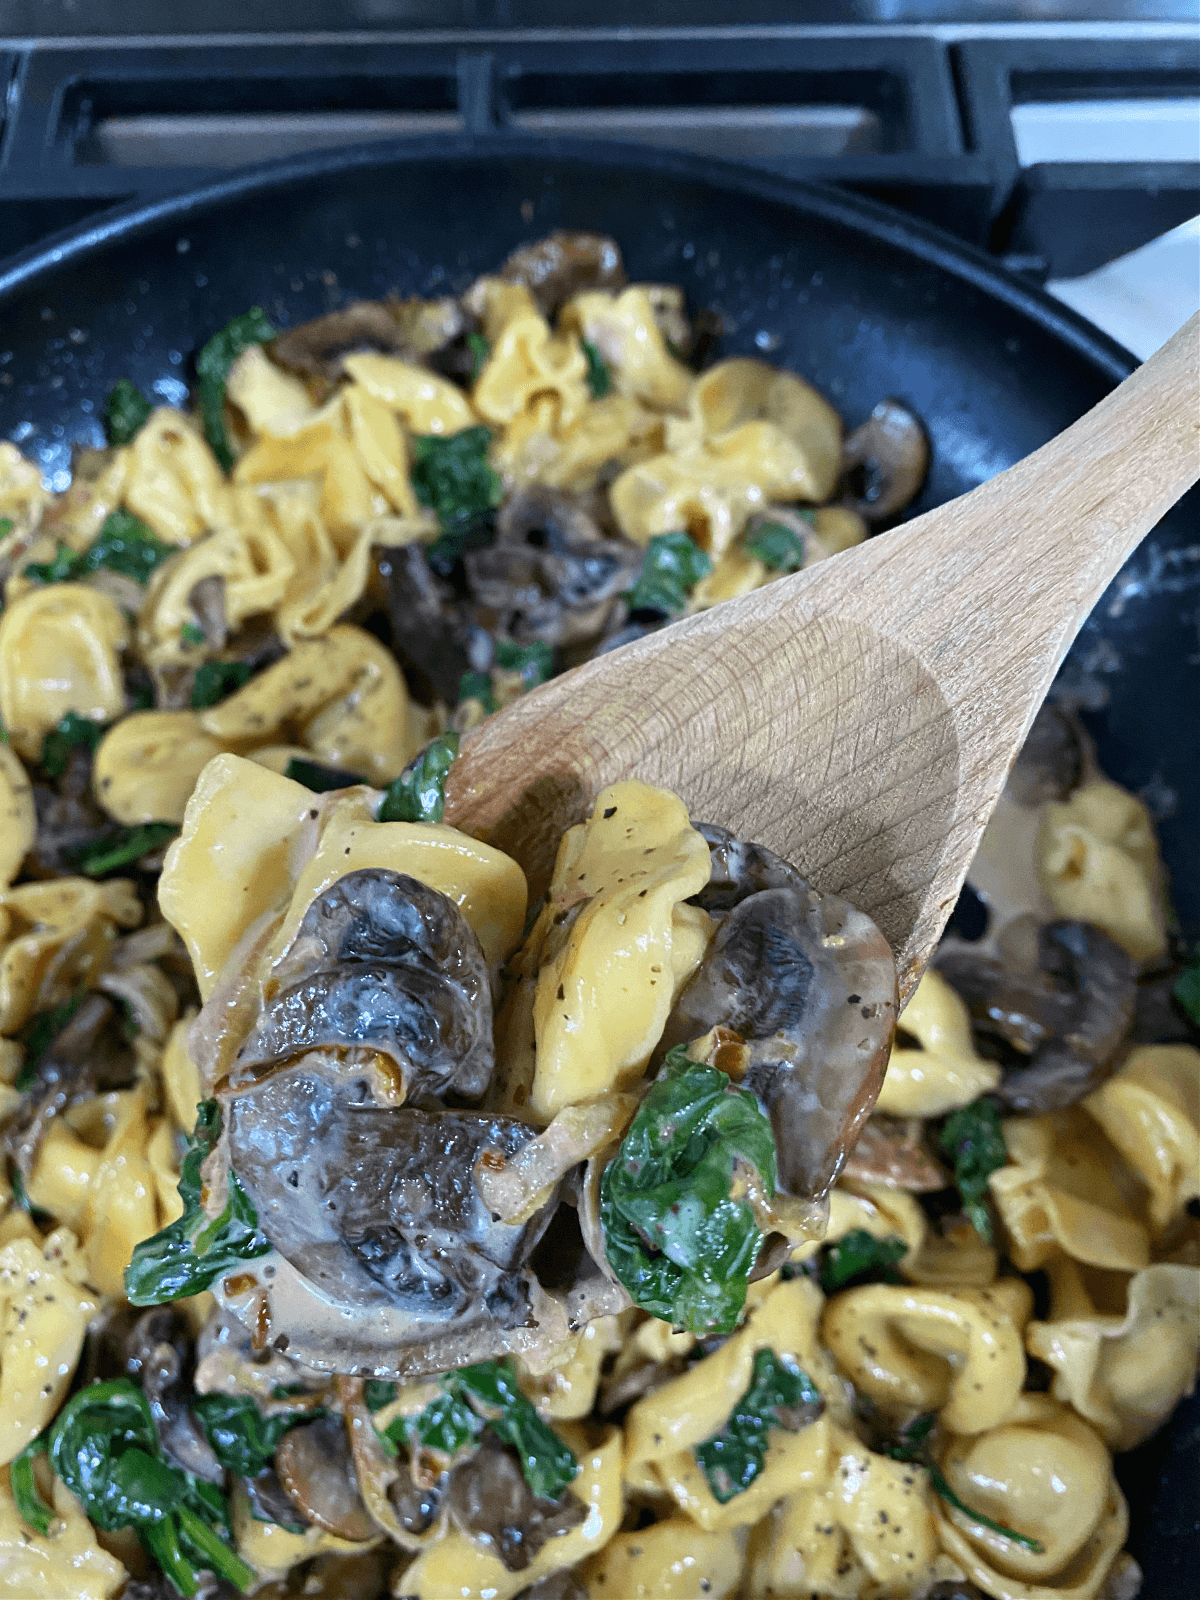 A wooden spoon filled with cheese tortellini, caramelized onions, spinach and mushrooms.